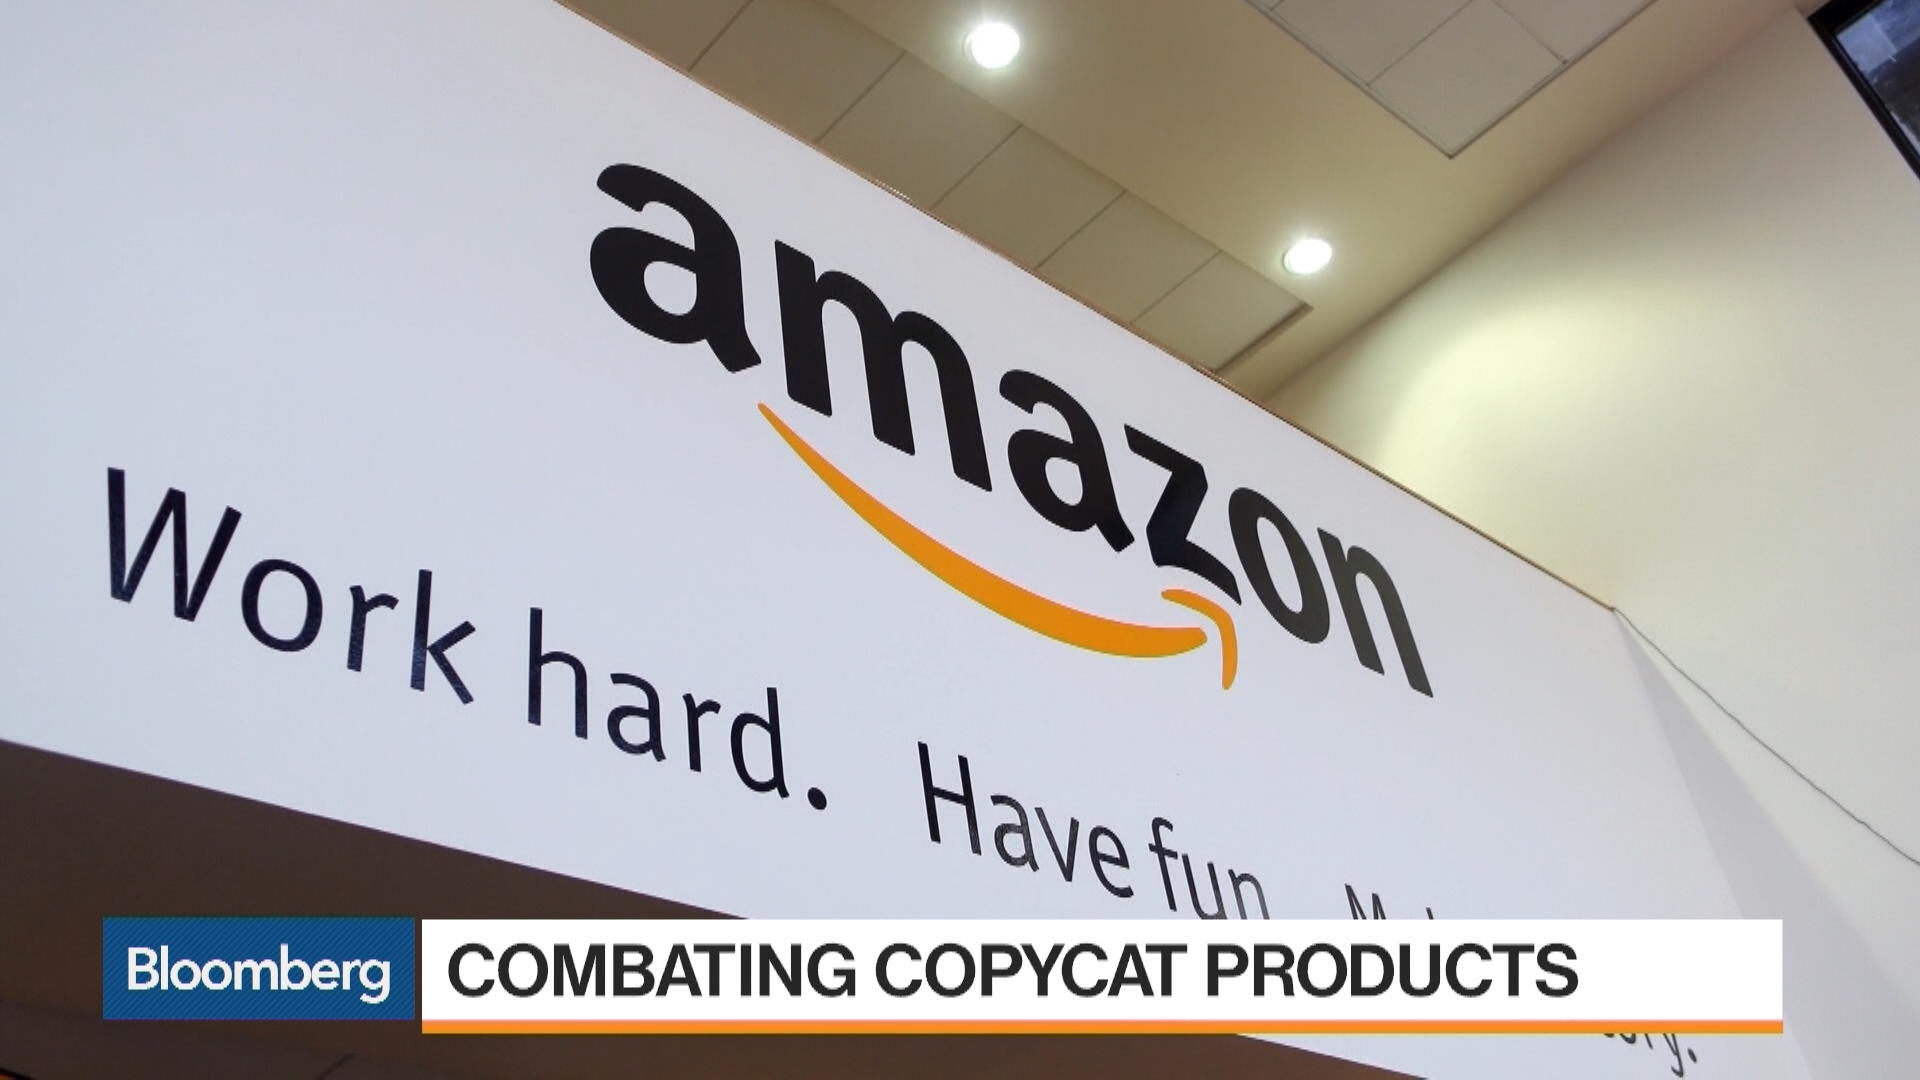 Amazon Gets Real About Fakes - Bloomberg